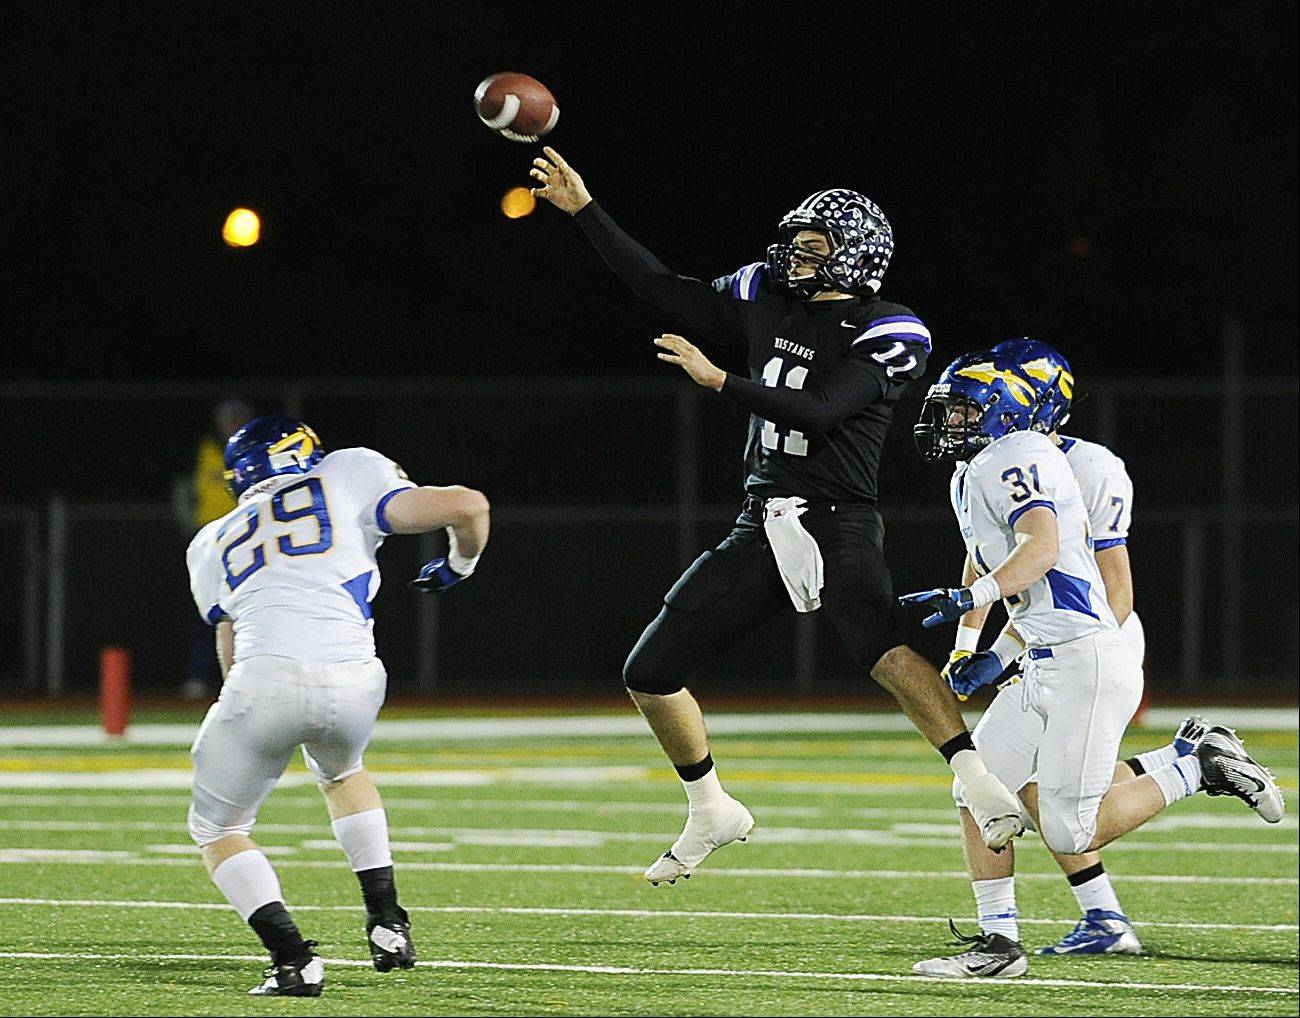 Rolling Meadow's Jack Milas throws on the run and in mid-air to Alex Niecikowski for a 64-yard pass play in the first quarter in the Class 6A playoff football game at Rolling Meadows High School on Friday.